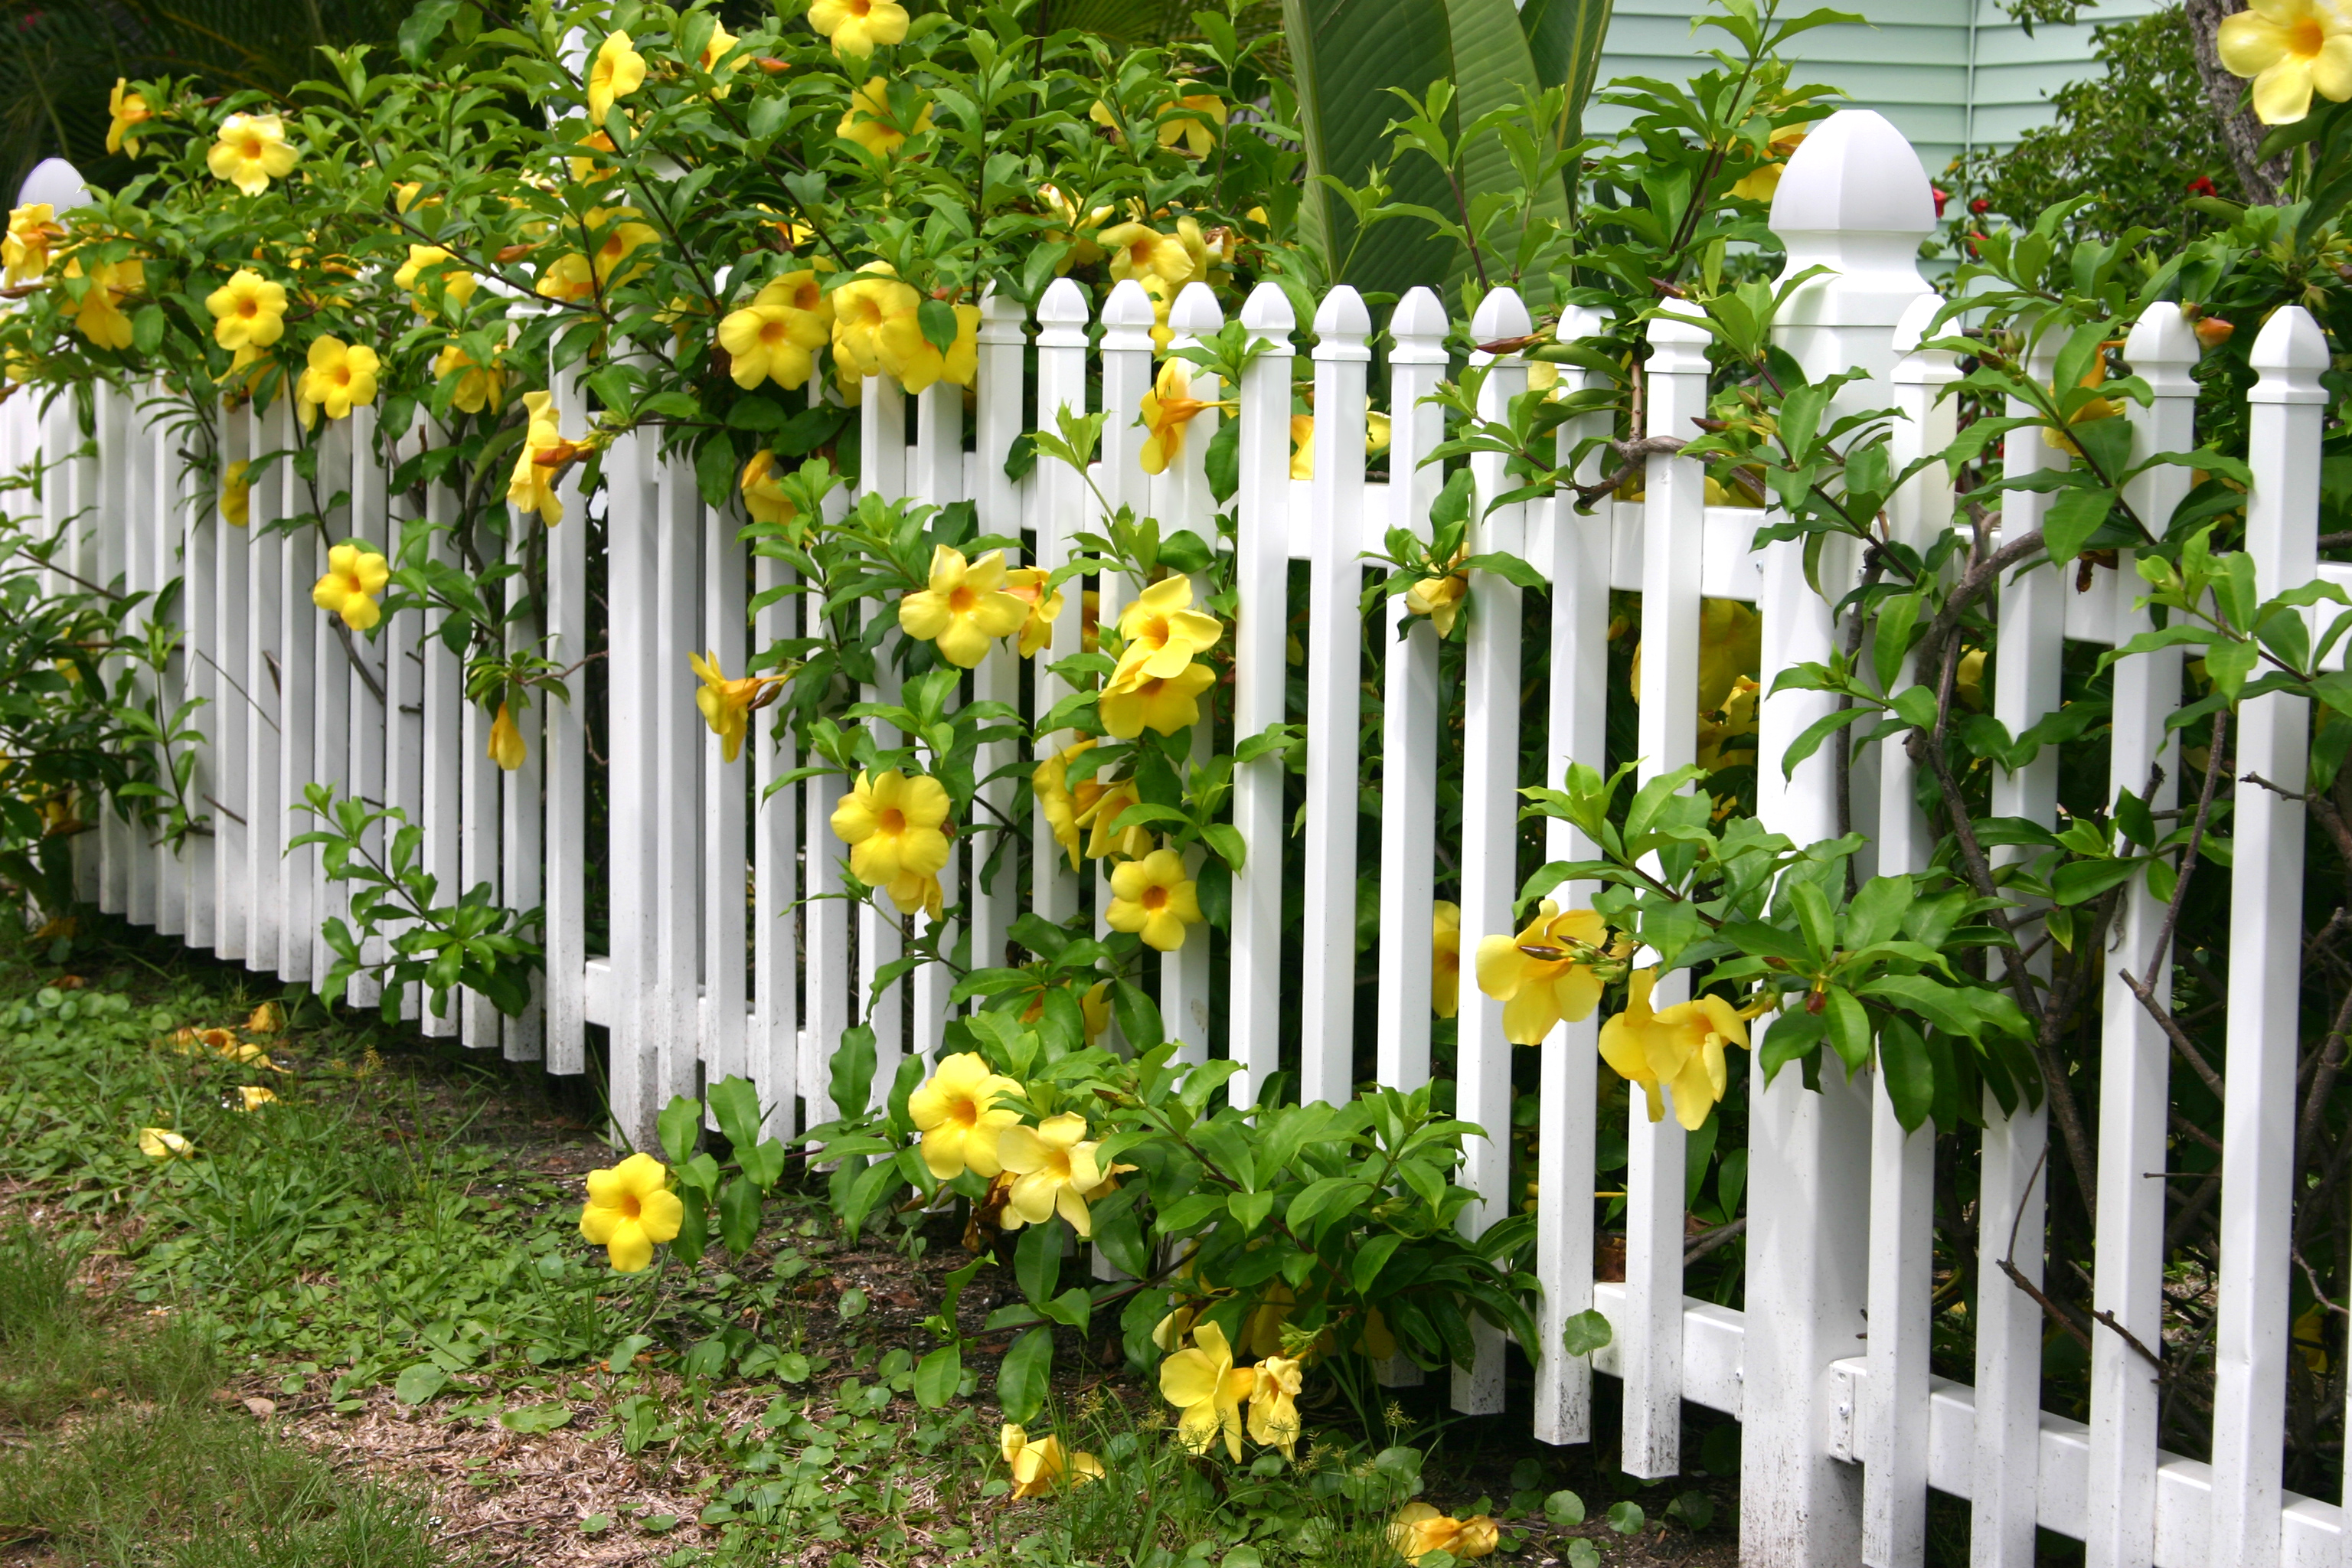 white picket fence with yellow flowers growing through it